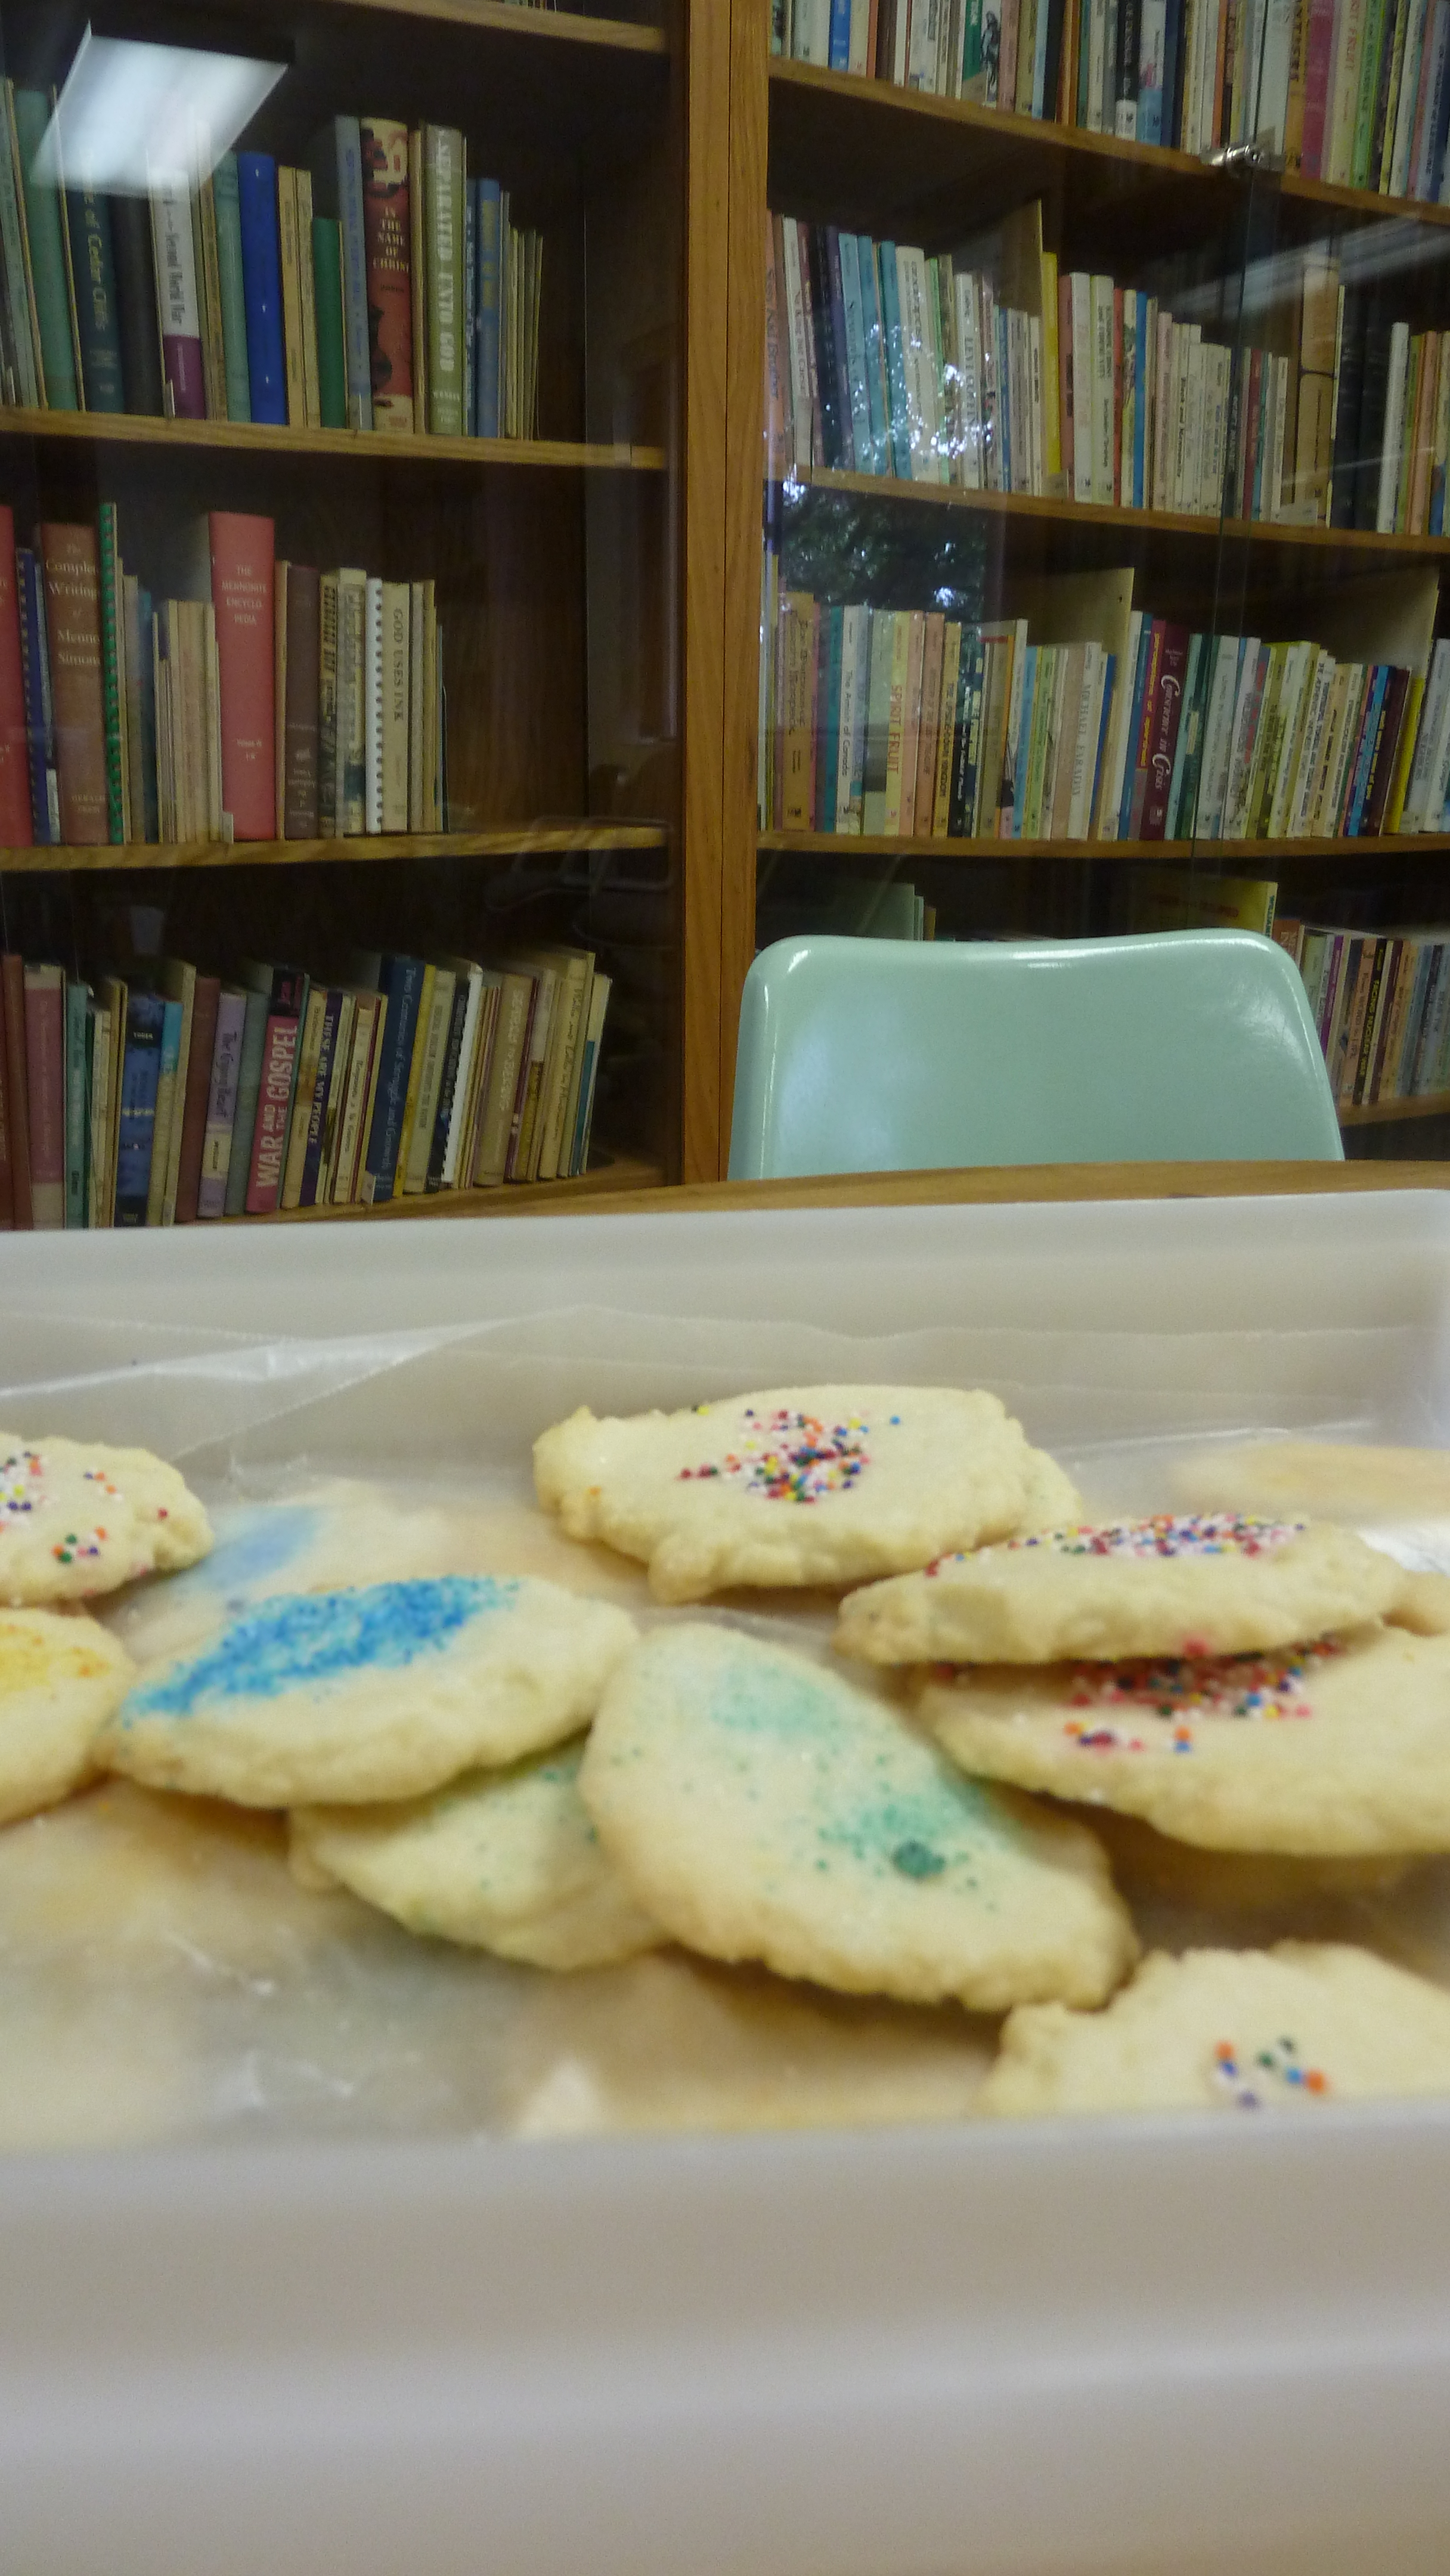 Two Family Favorite Recipes For Sugar Cookies One Amish Mennonite